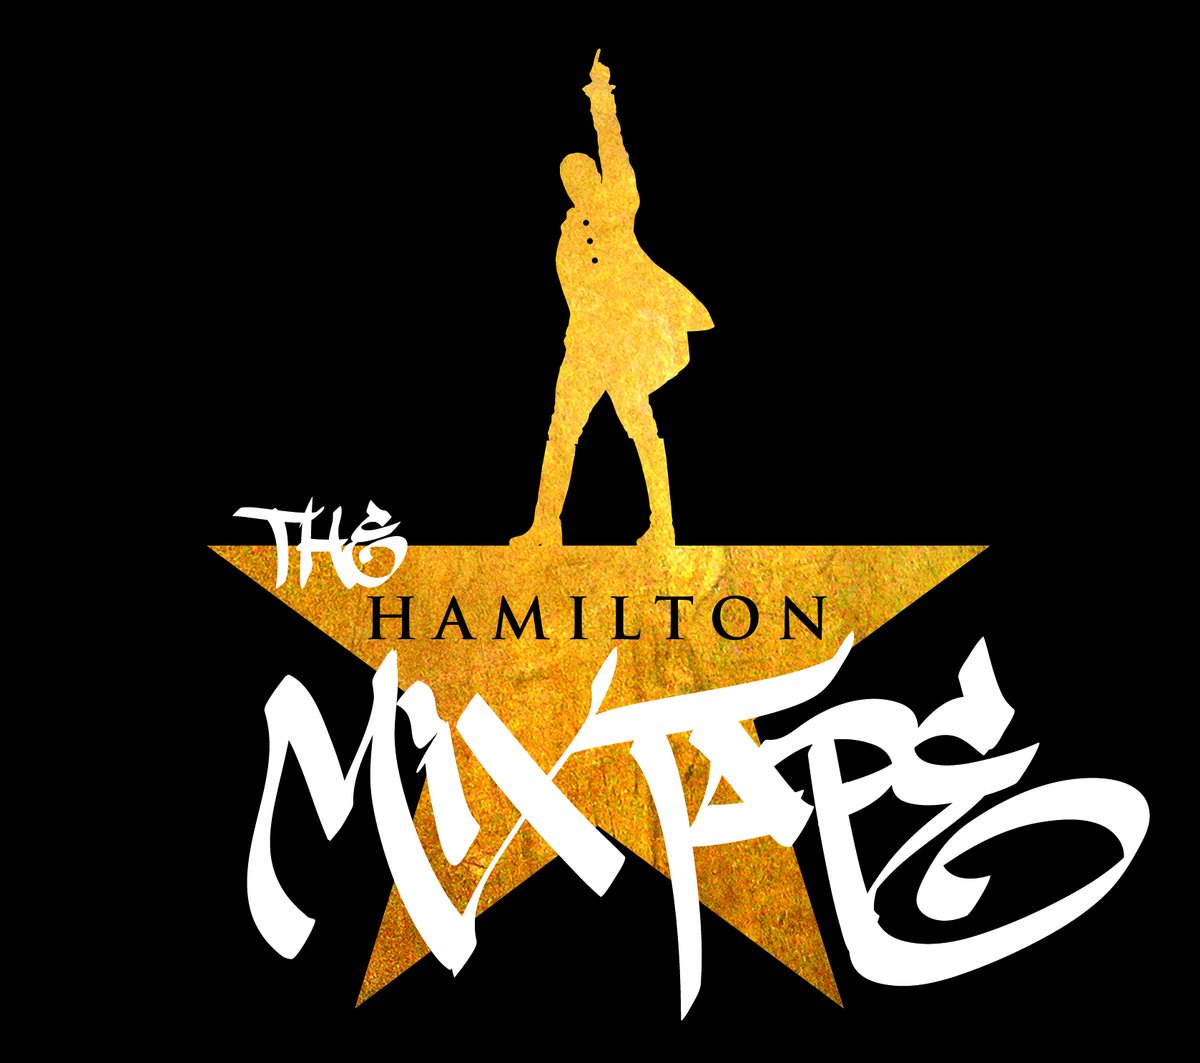 Wrote My Way Out with @Nas @Lin_Manuel @DaveEast #HamiltonMixtape https://t.co/Afv3eYSZPf